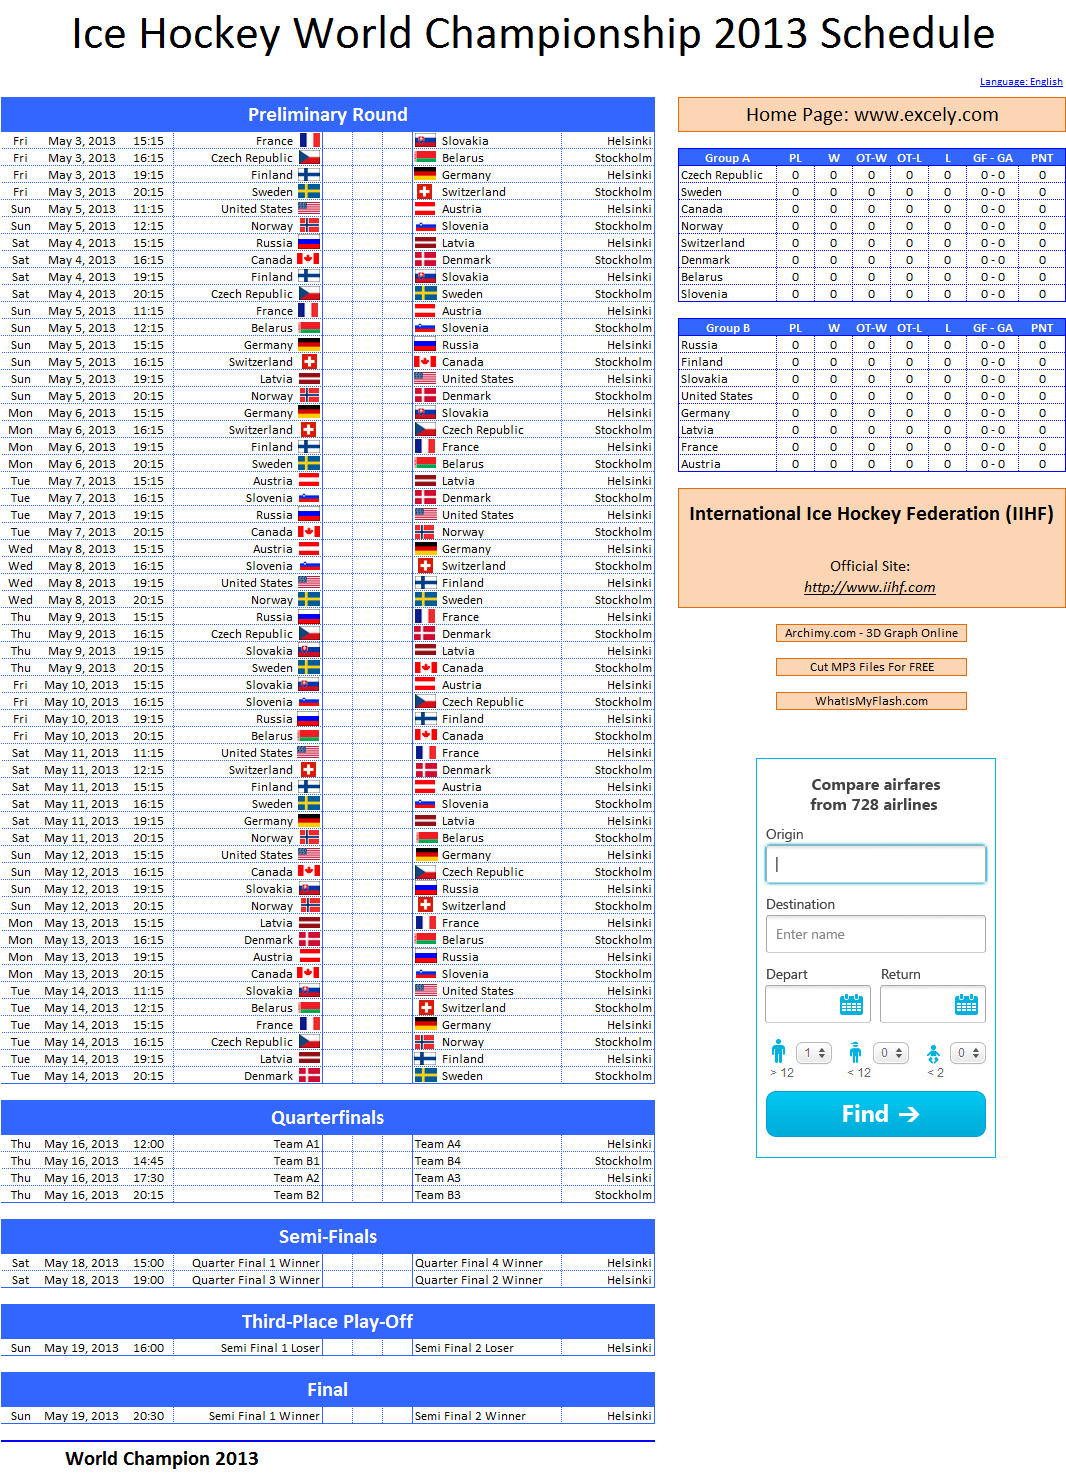 Excel Template to Compare Tournament Predictions - Excel VBA Templates